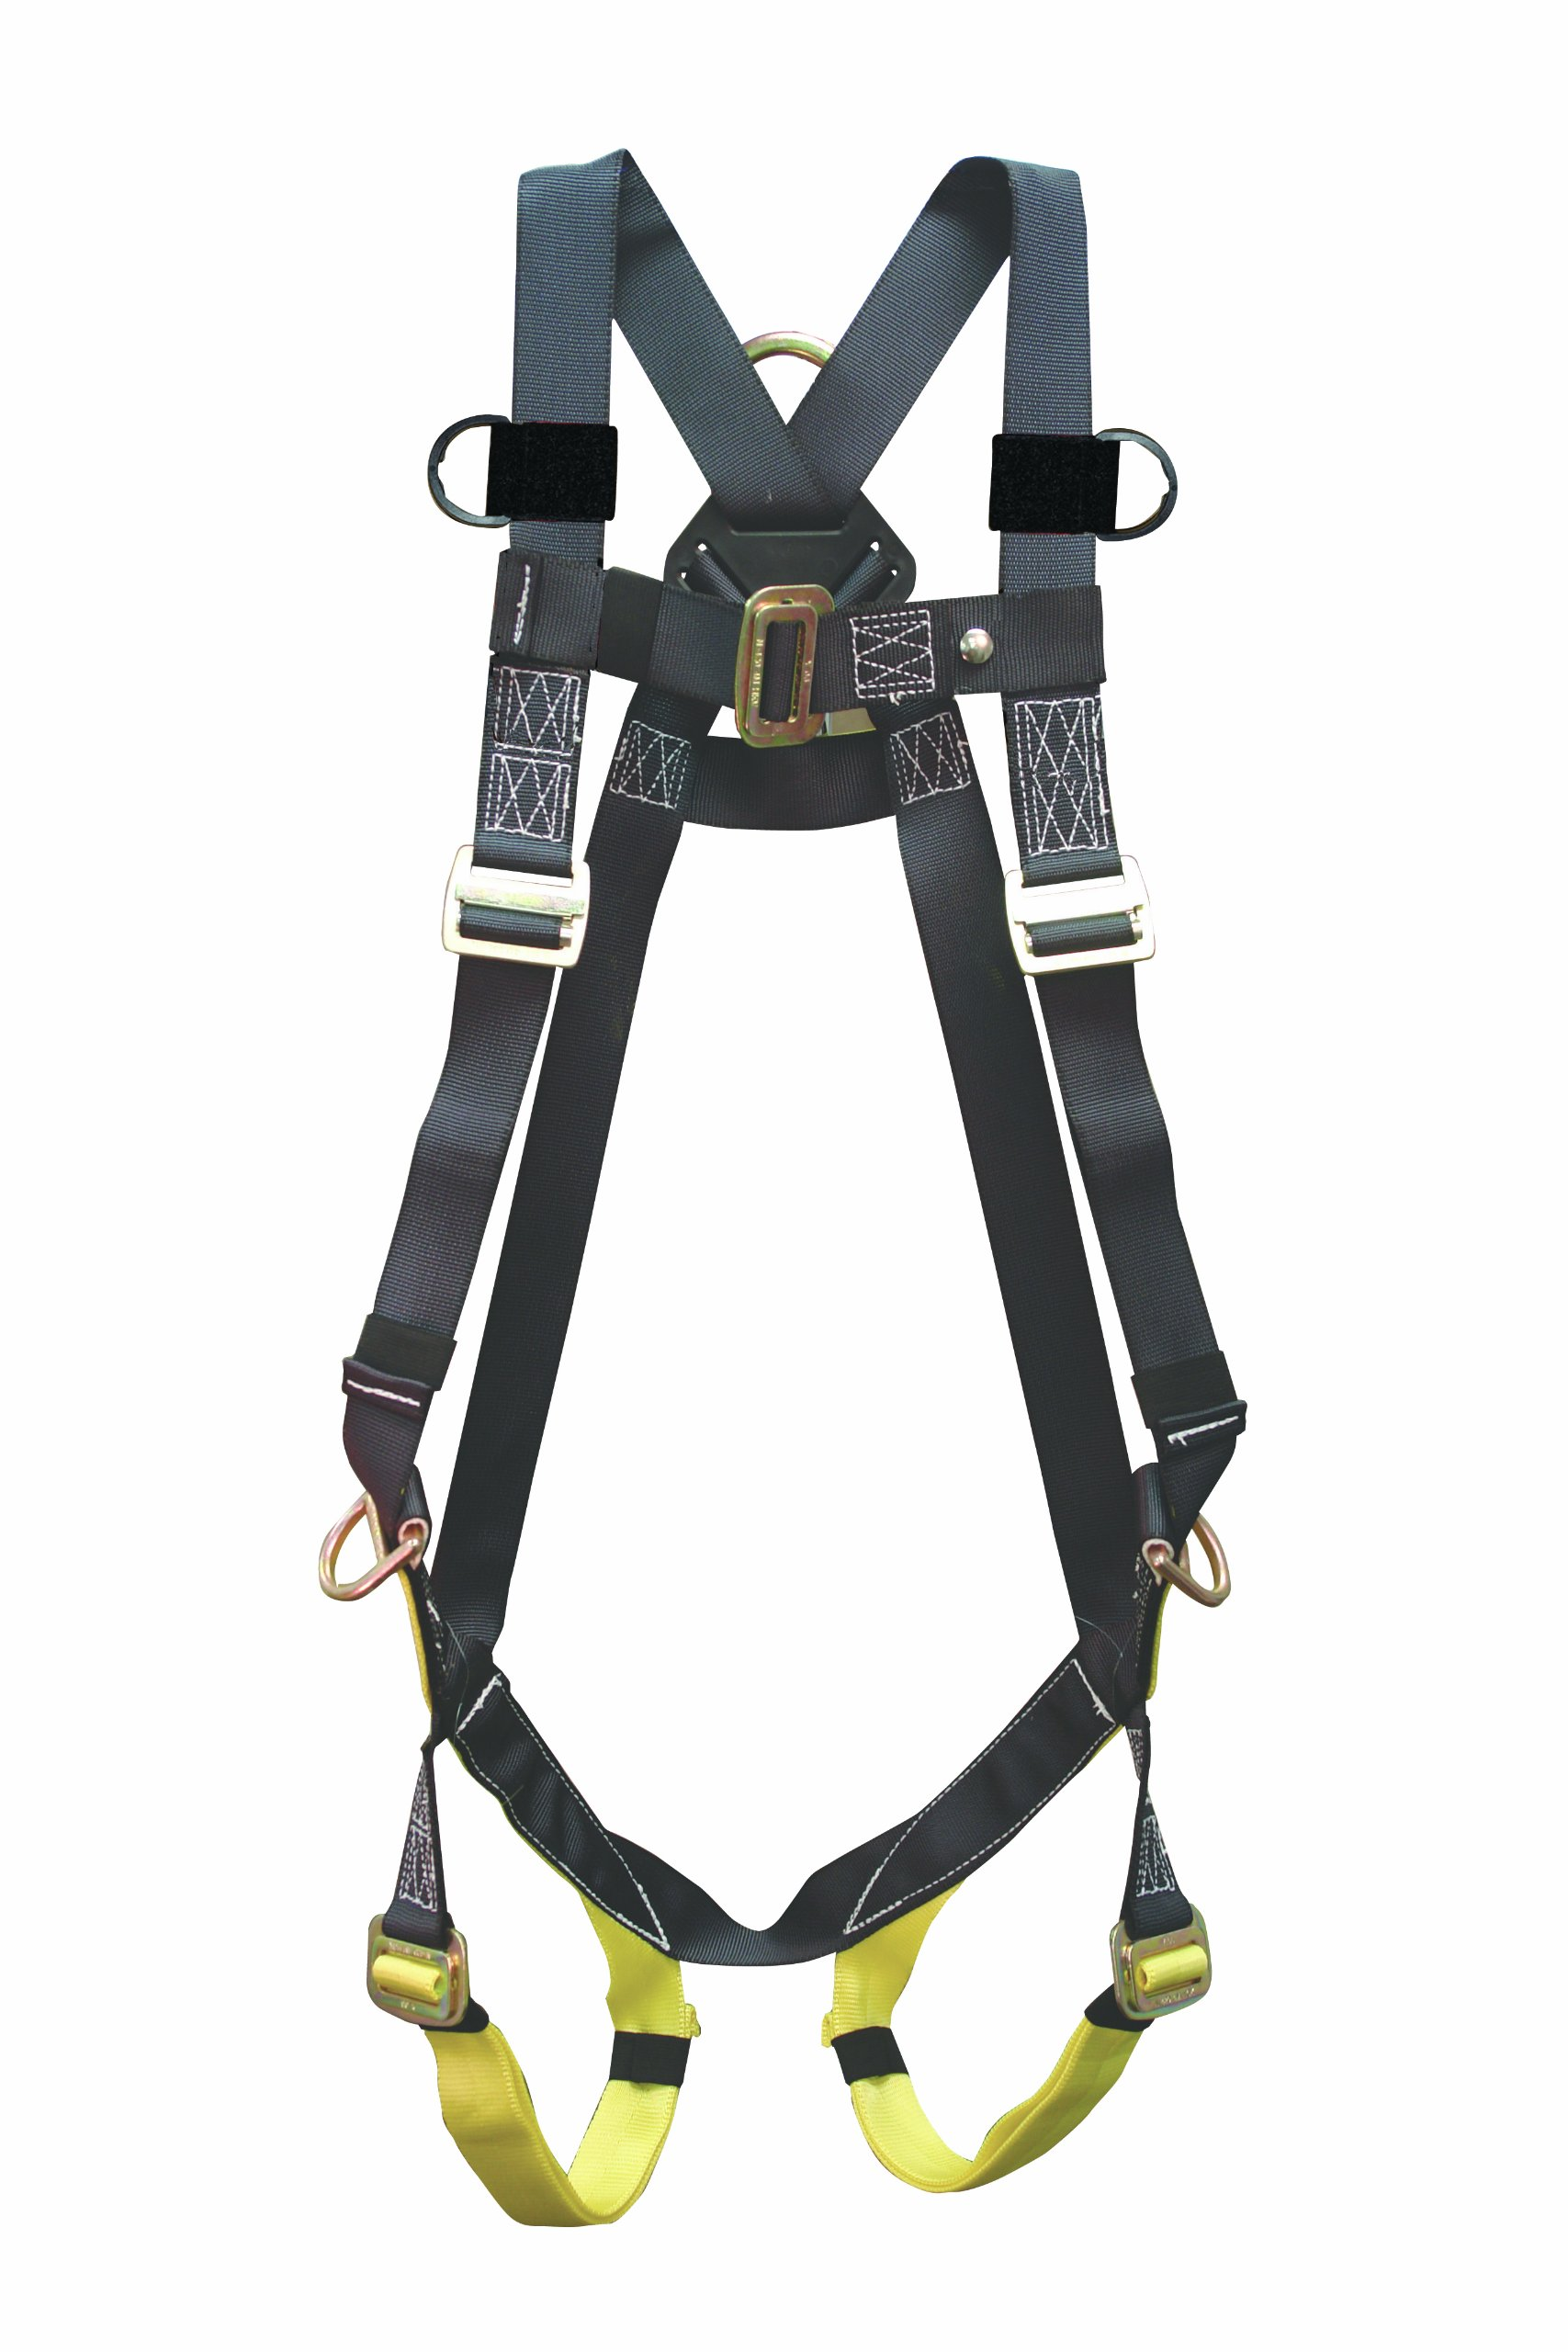 Elk River 42309 Universal Polyester/Nylon Full Body 3 Steel D-Ring Harness with Parachute Mating Buckles and Fall Indicator, Fits Medium to 2X-Large